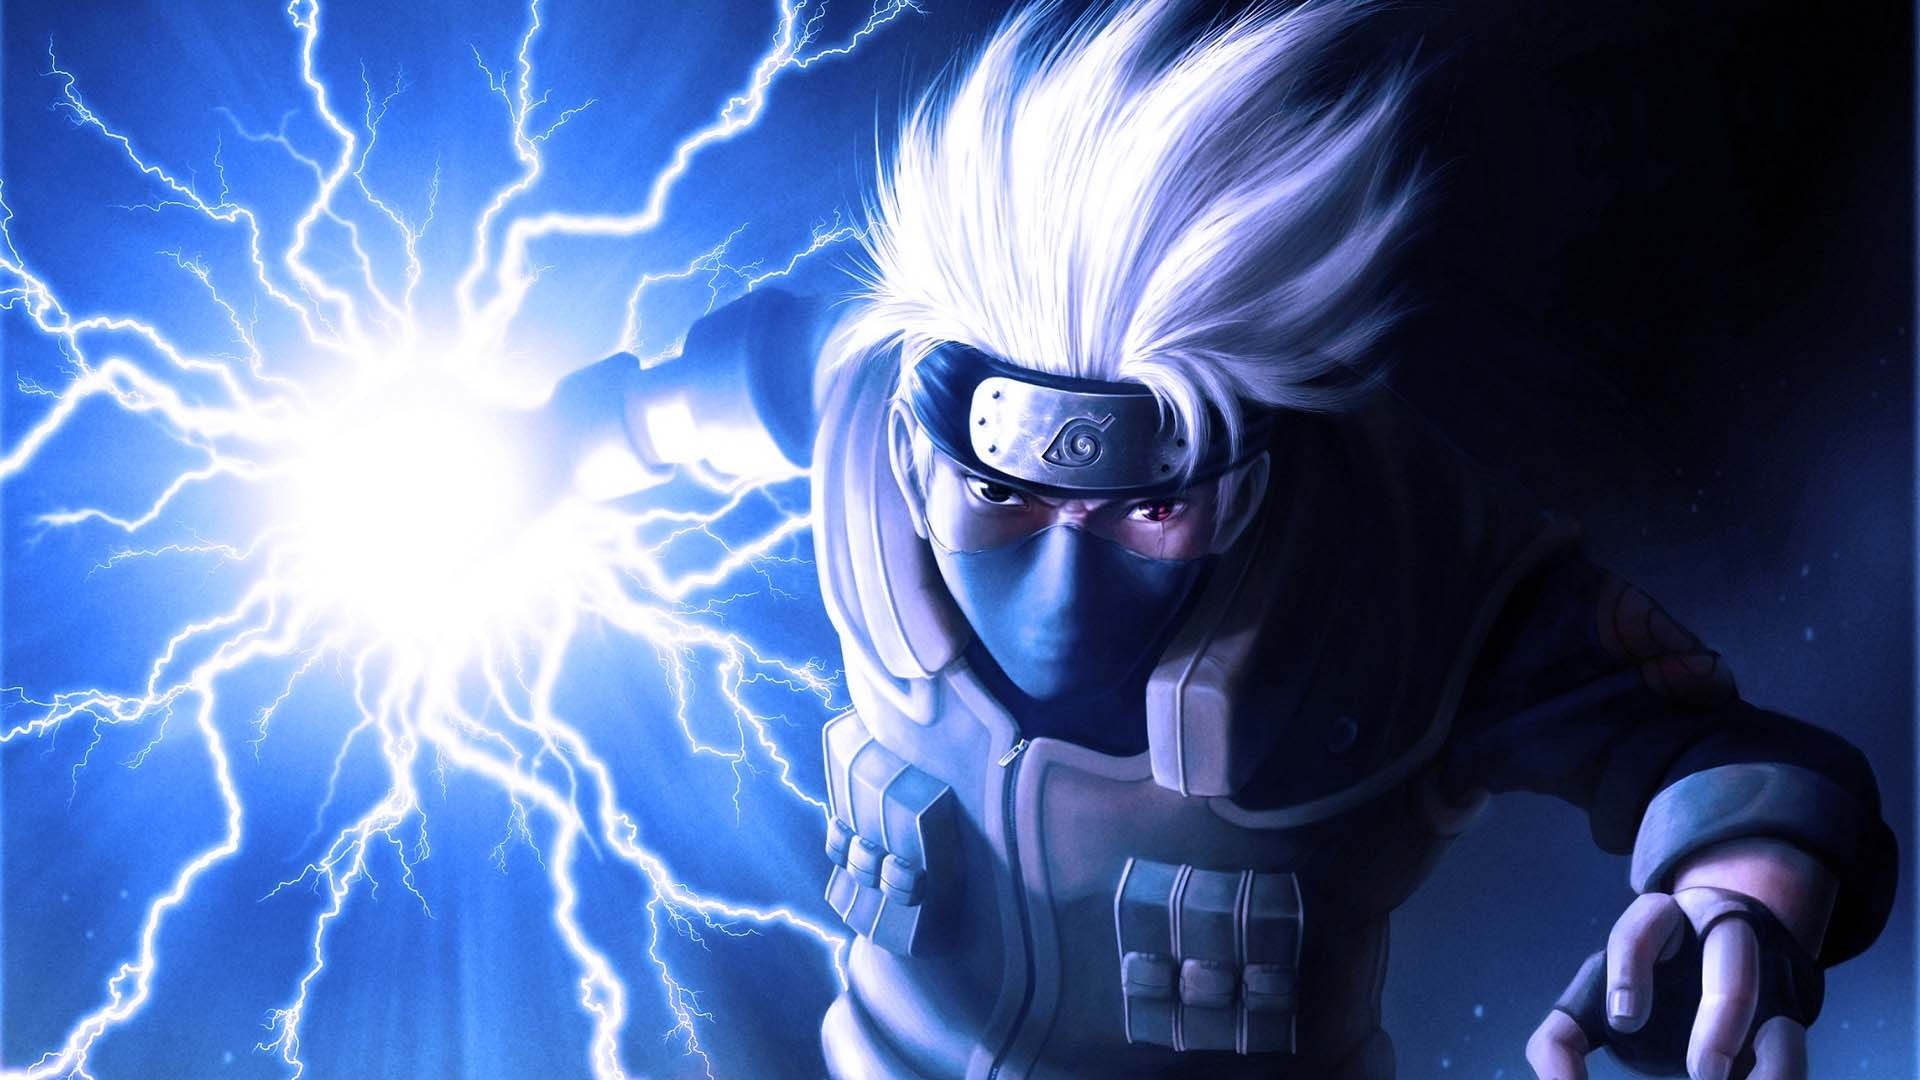 free desktop backgrounds for naruto | hueputalo | pinterest